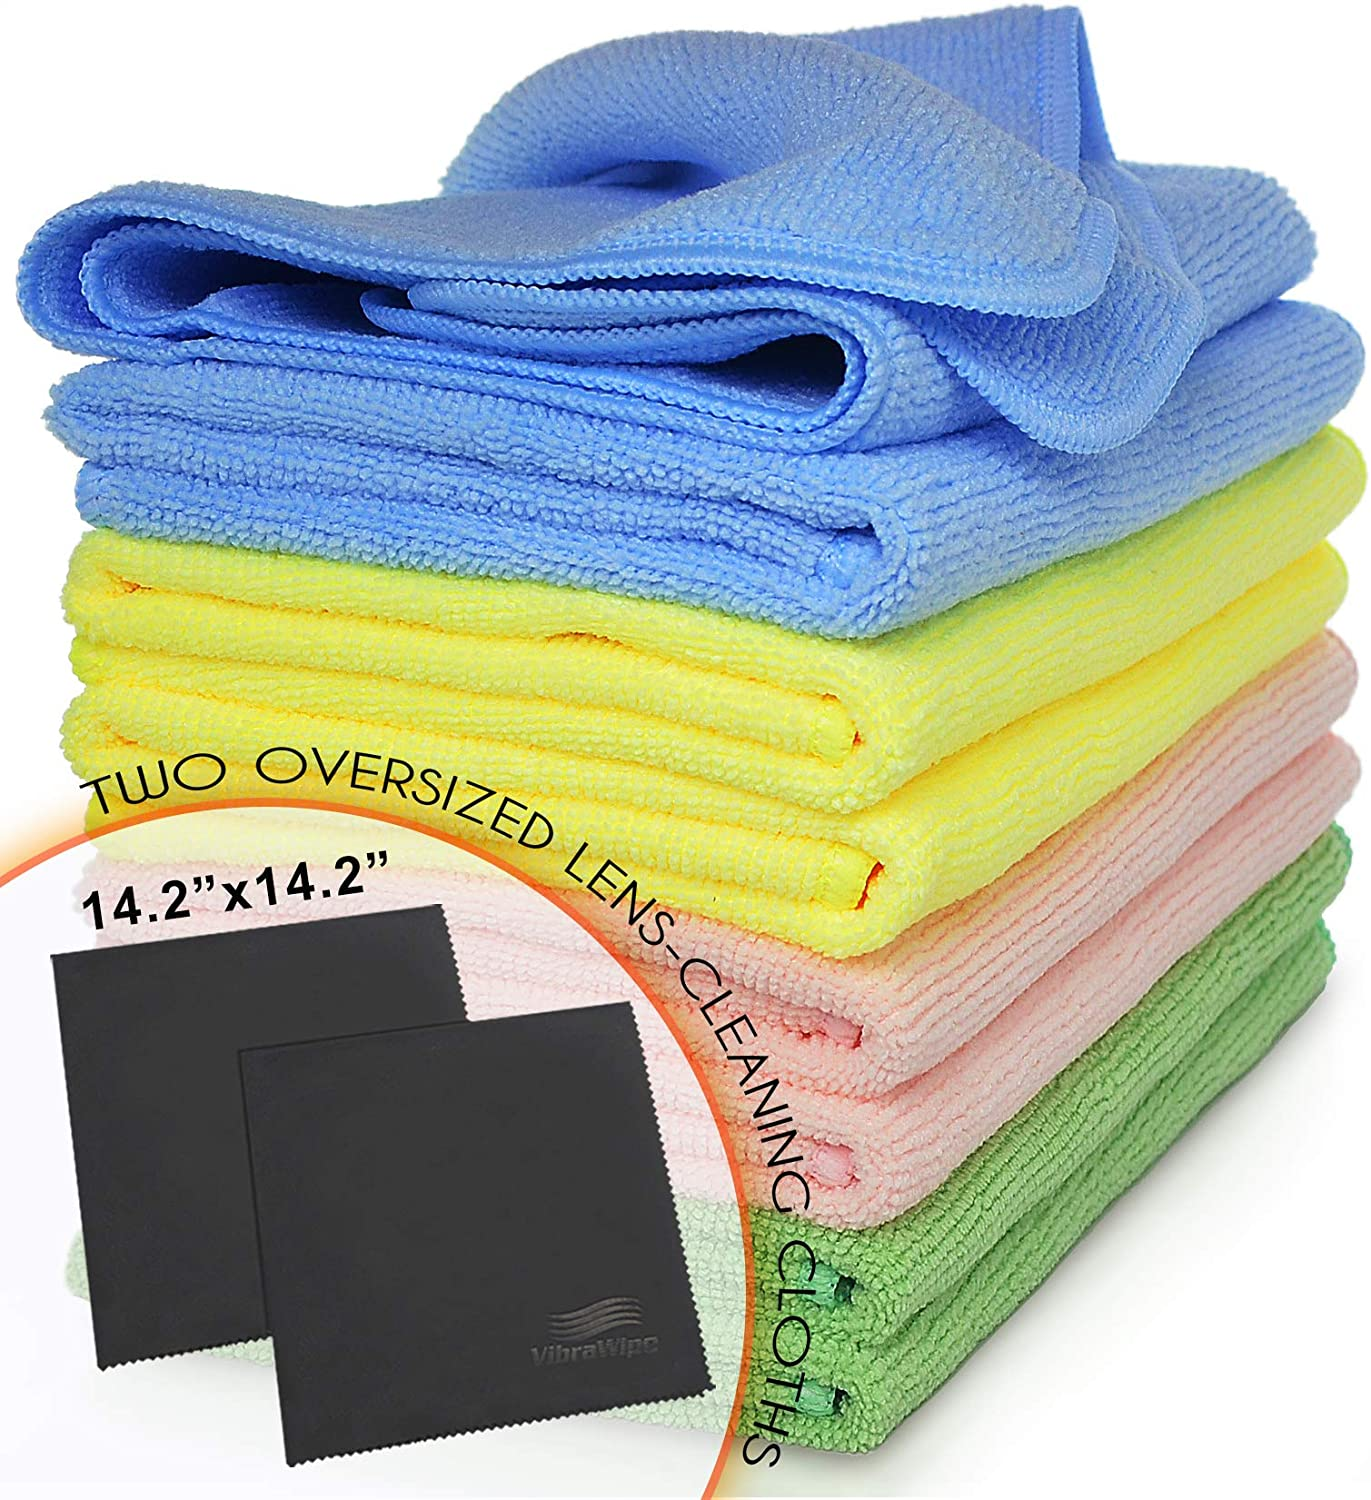 VibraWipe Microfiber Cleaning Cloths 5-Color Pack, 8 Pieces of All-Purpose Cloths, 2 Pieces of Lense Cloths. Trap Dust and Dirt for a Cleaner Home - Machine Washable, Reusable and Lint-Free